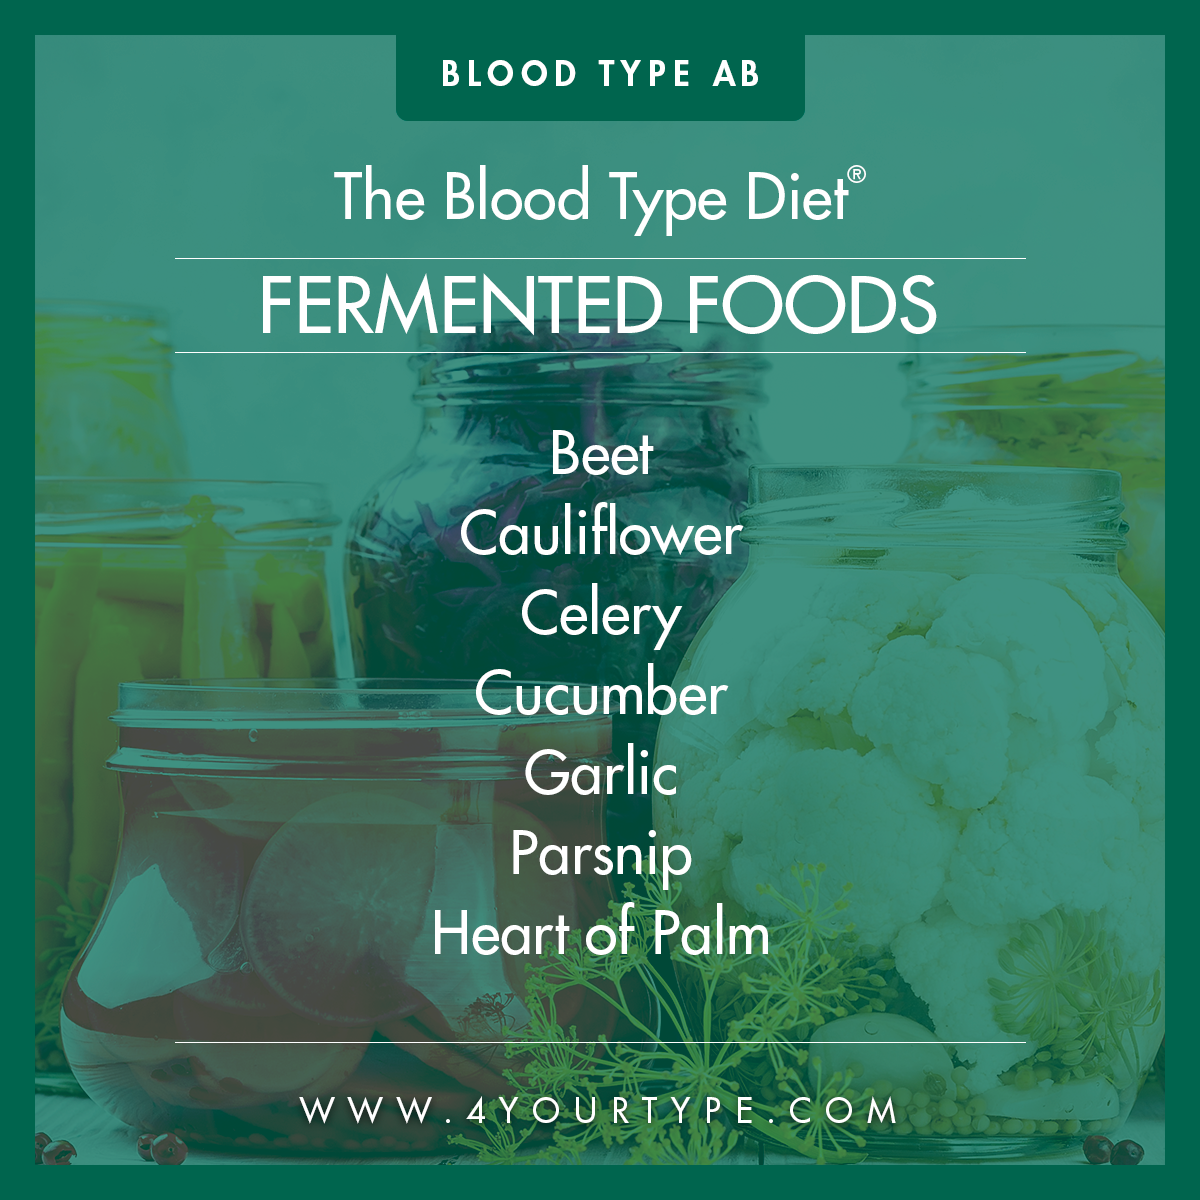 Blood Type AB - Fermented Foods